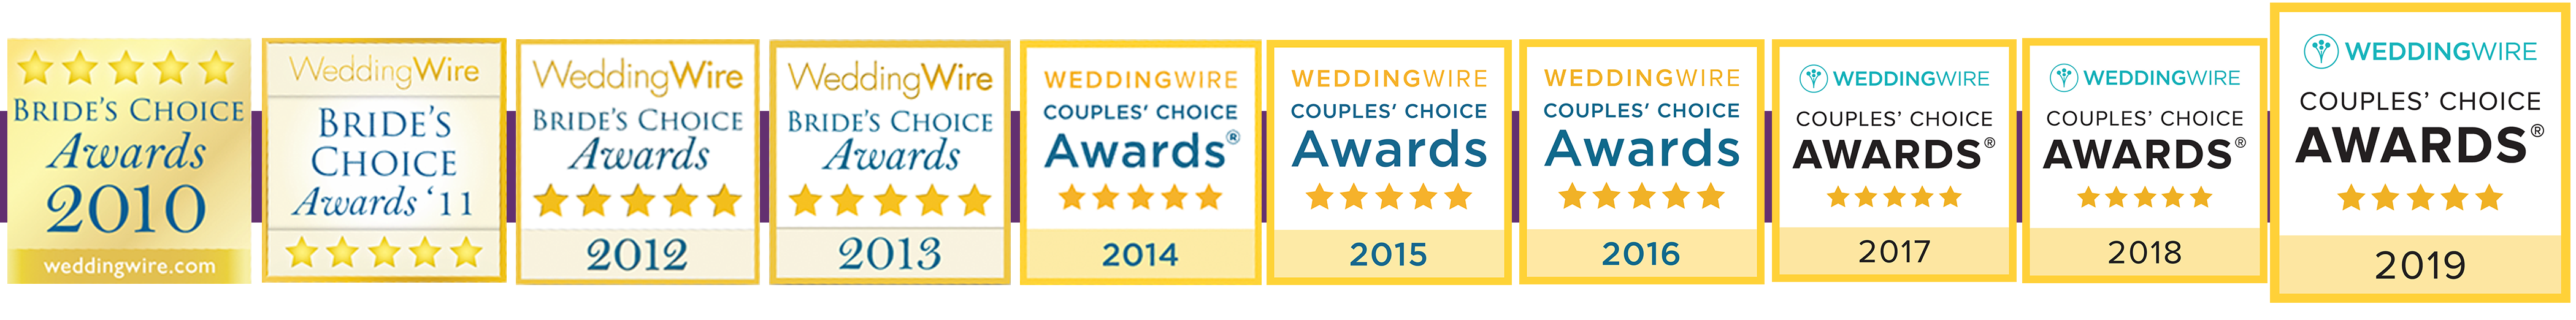 WeddingWire Couples Choice Something 2 Dance 2 Chicago DJ